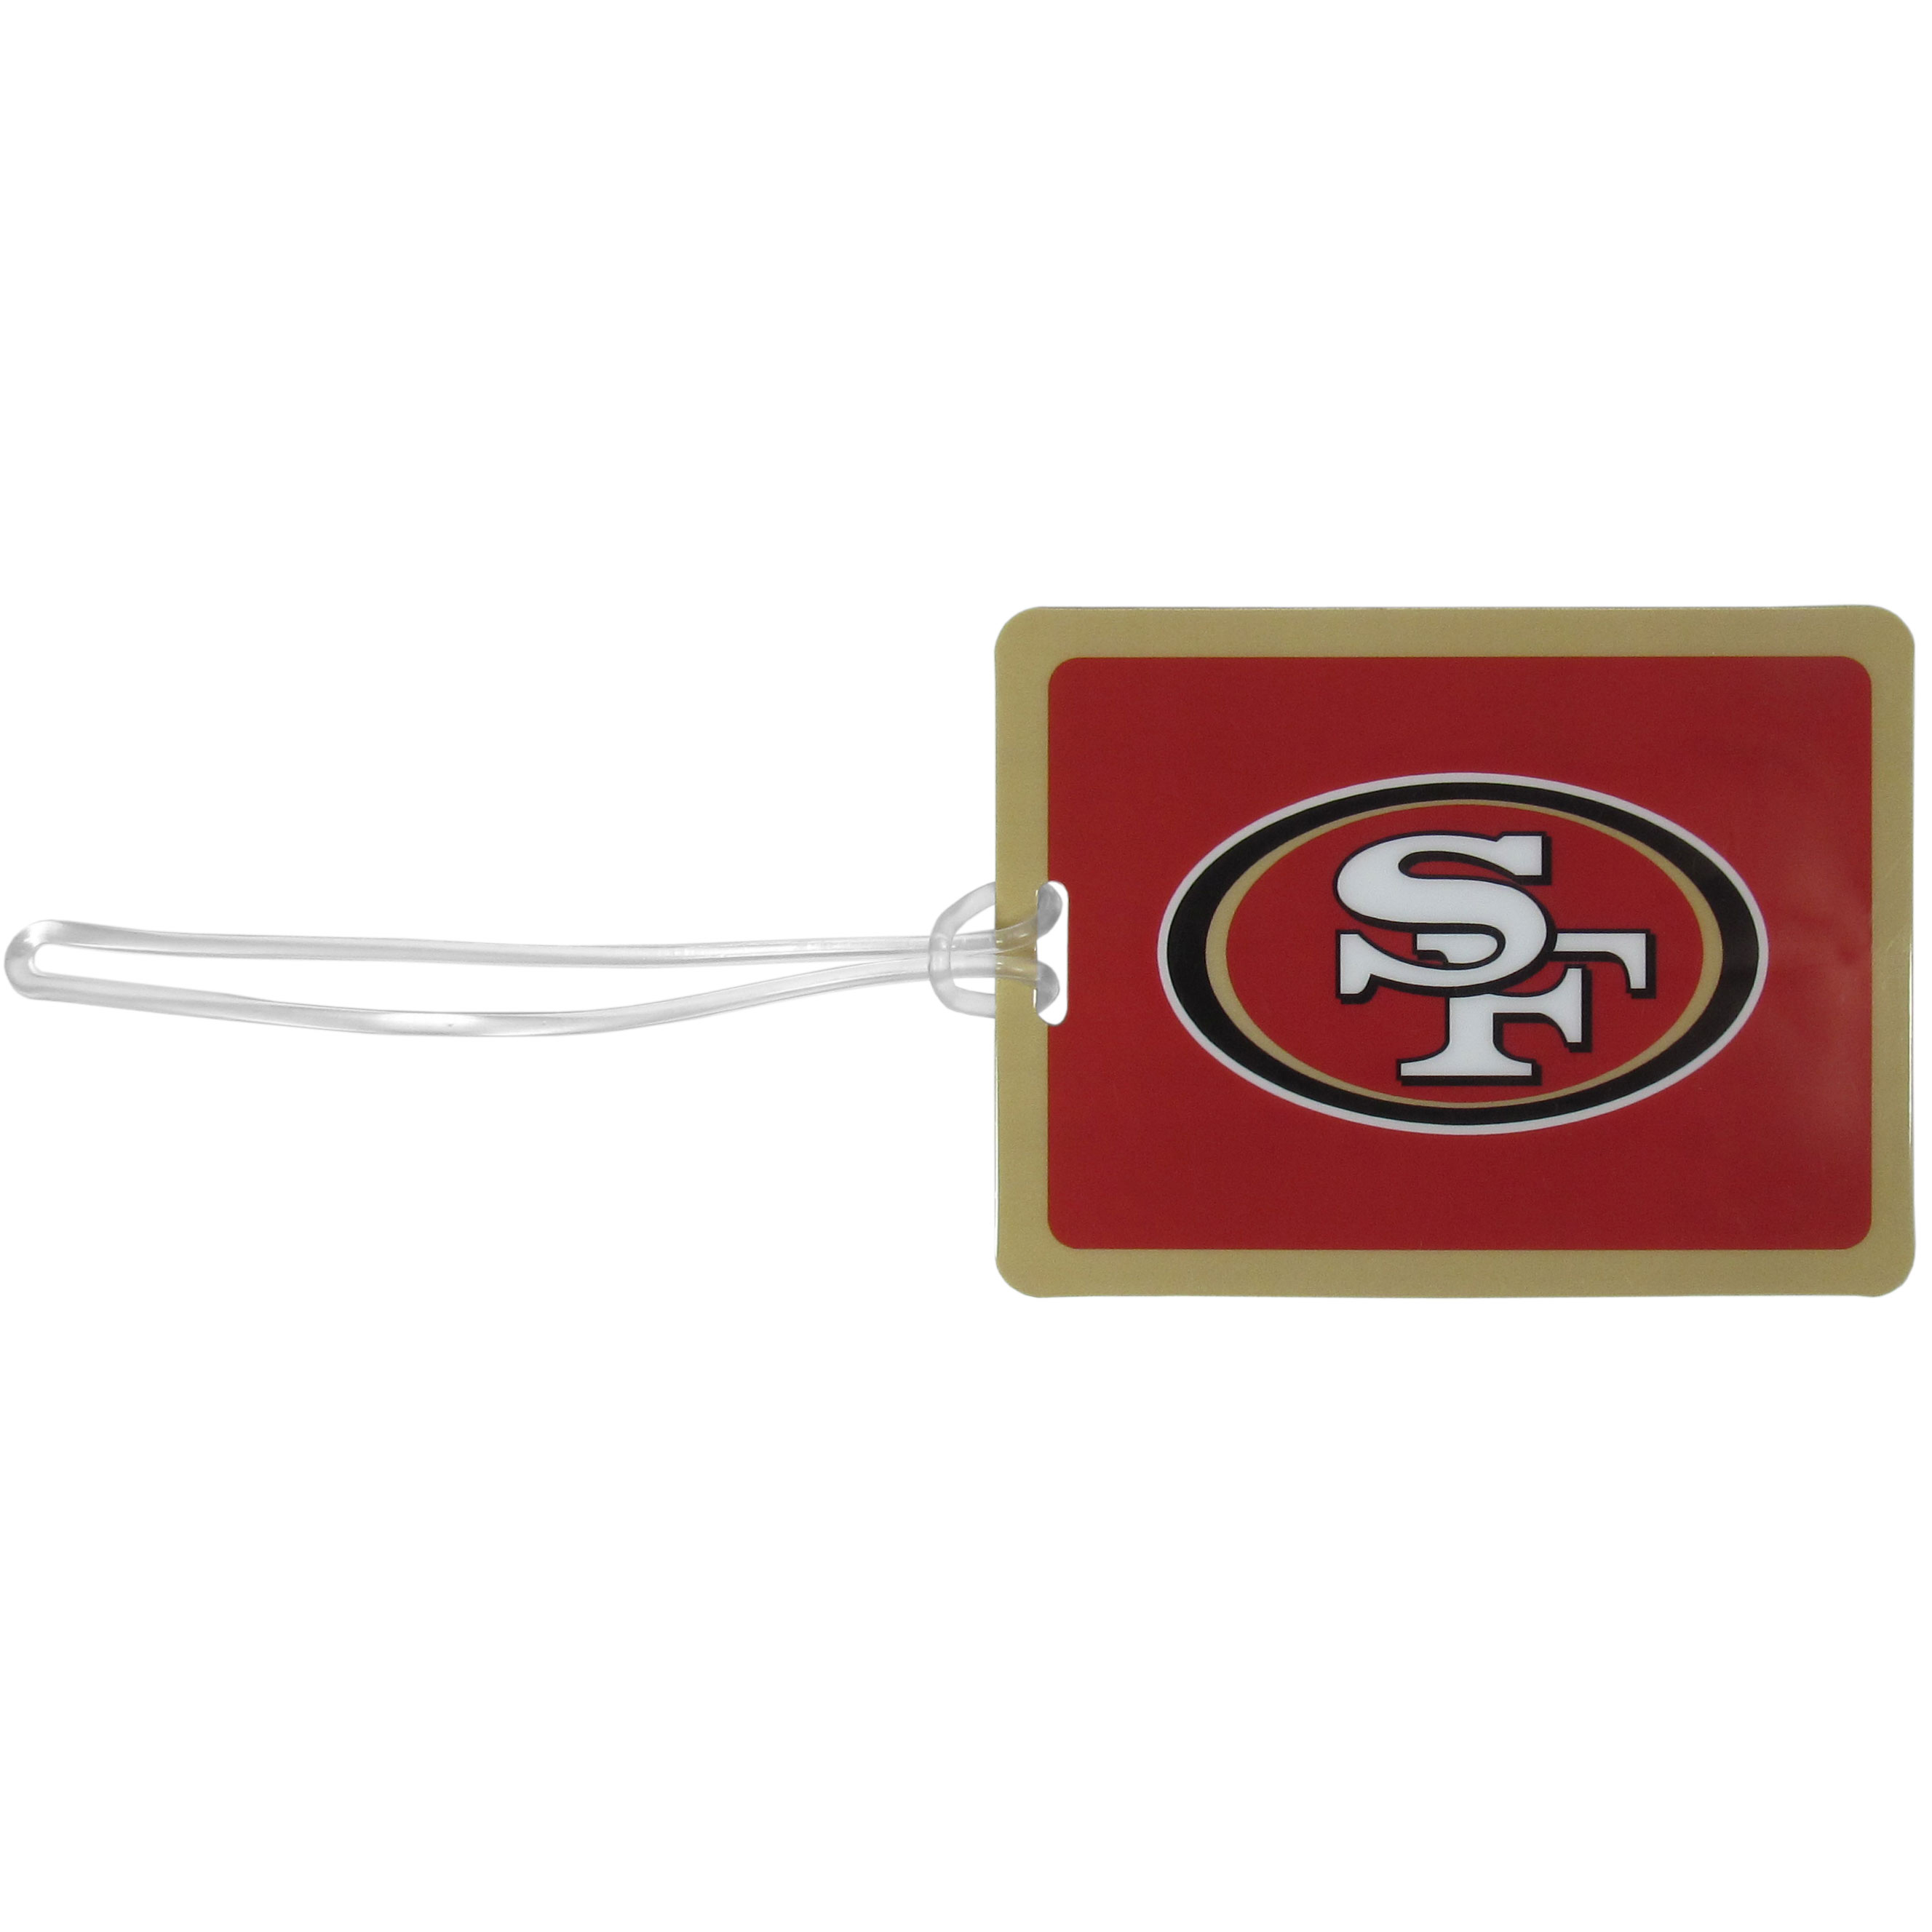 San Francisco 49ers Vinyl Luggage Tag - Tired of trying to spot your suitcase or bag in a sea of luggage? Try our large and colorful San Francisco 49ers luggage tag set. The tag is 4x3 inches and has a 5 inch cord to attach it easily to your bags, backpacks or luggage. The front of the tag features the team logo in a bright, team colored background and you can write you name, address and phone number on the back of the tag.